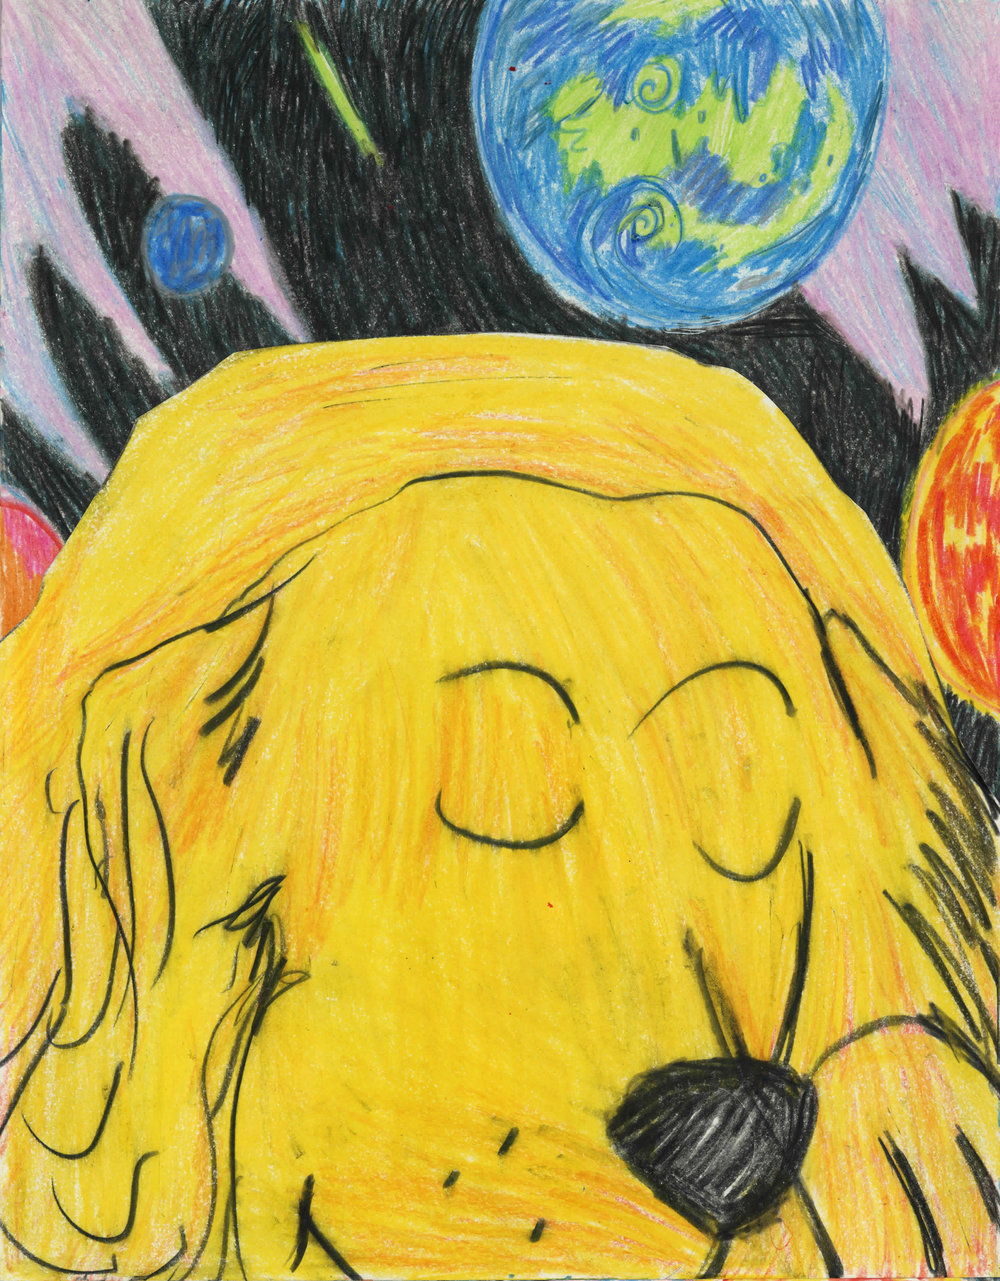 """The Dog Asleep in Space, color pencil and collage on paper, 11"""" x 14"""", 2017"""